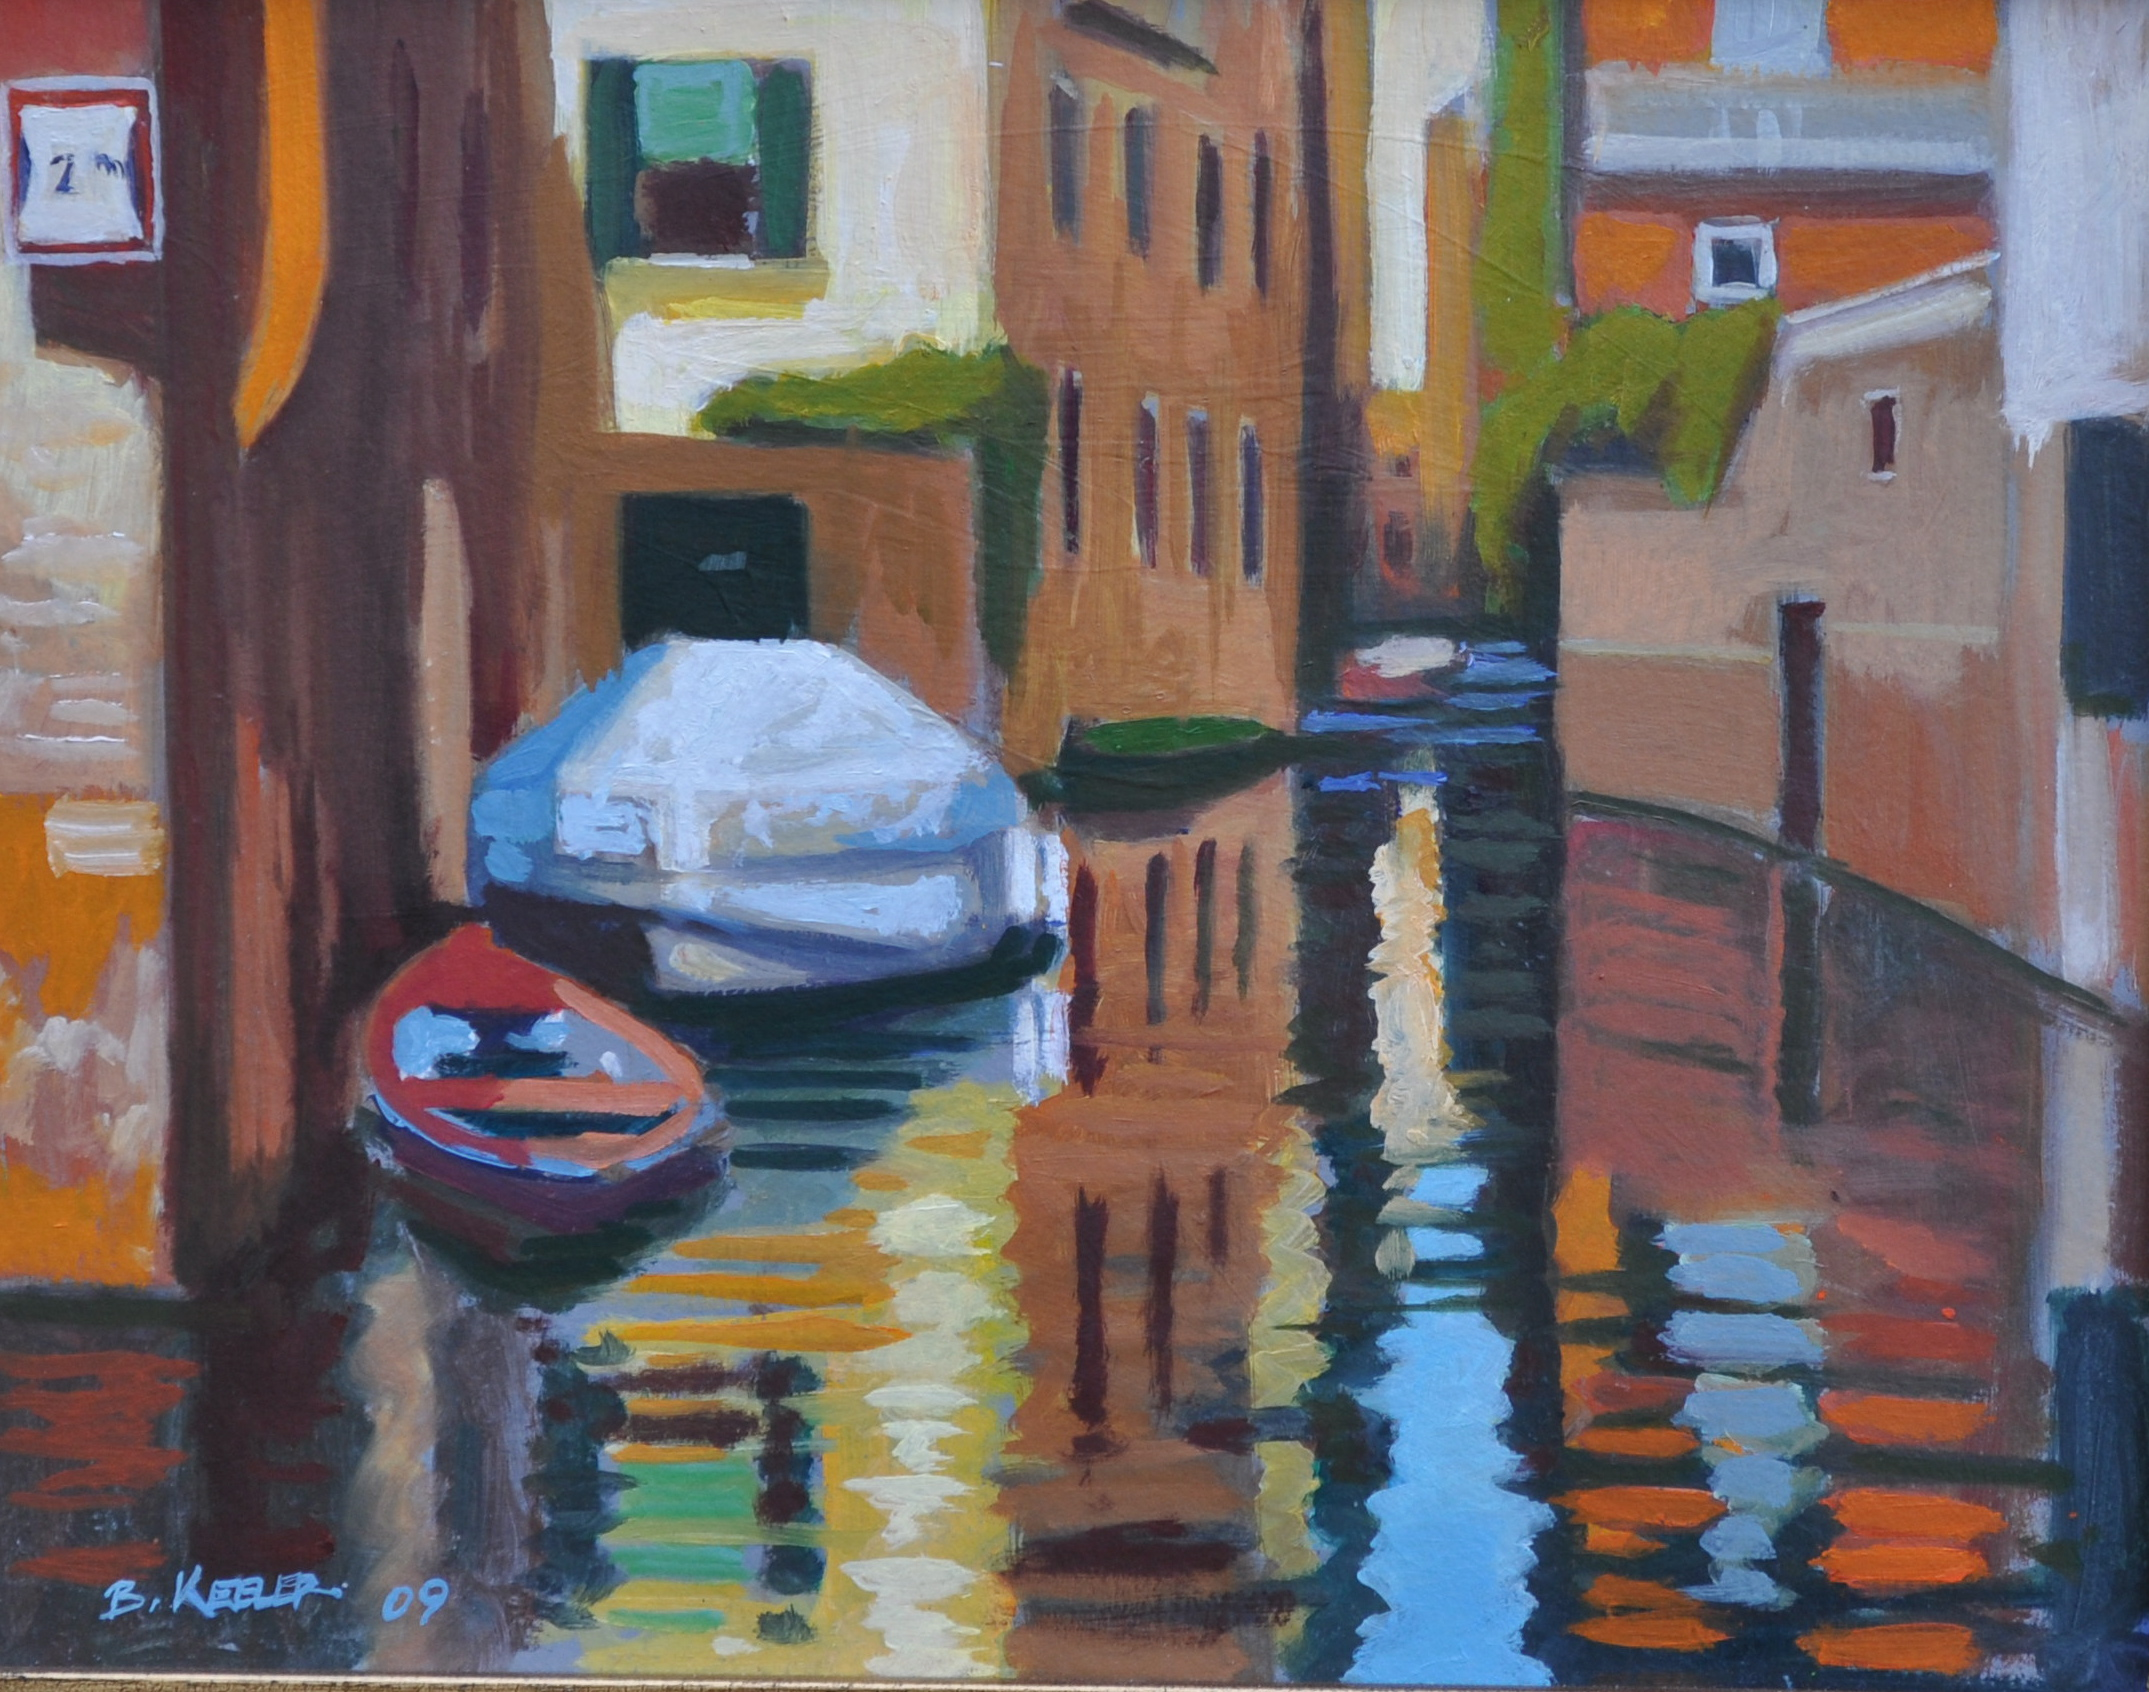 Canal View at San Rocco-VeniceJPG - Copy